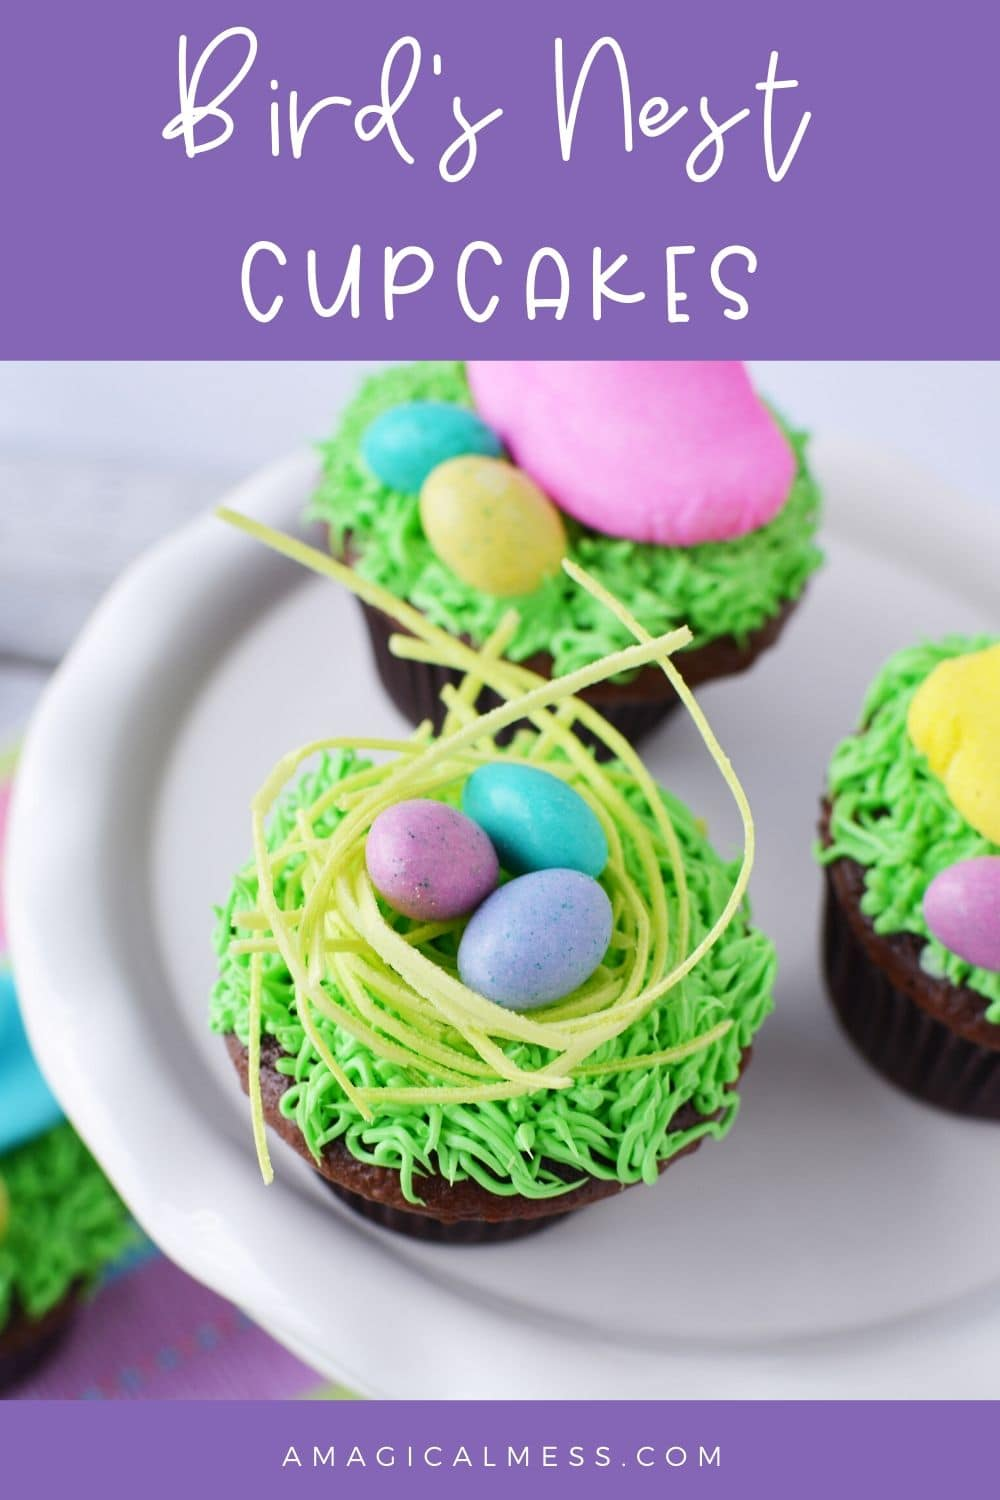 Cupcakes with Easter eggs on top